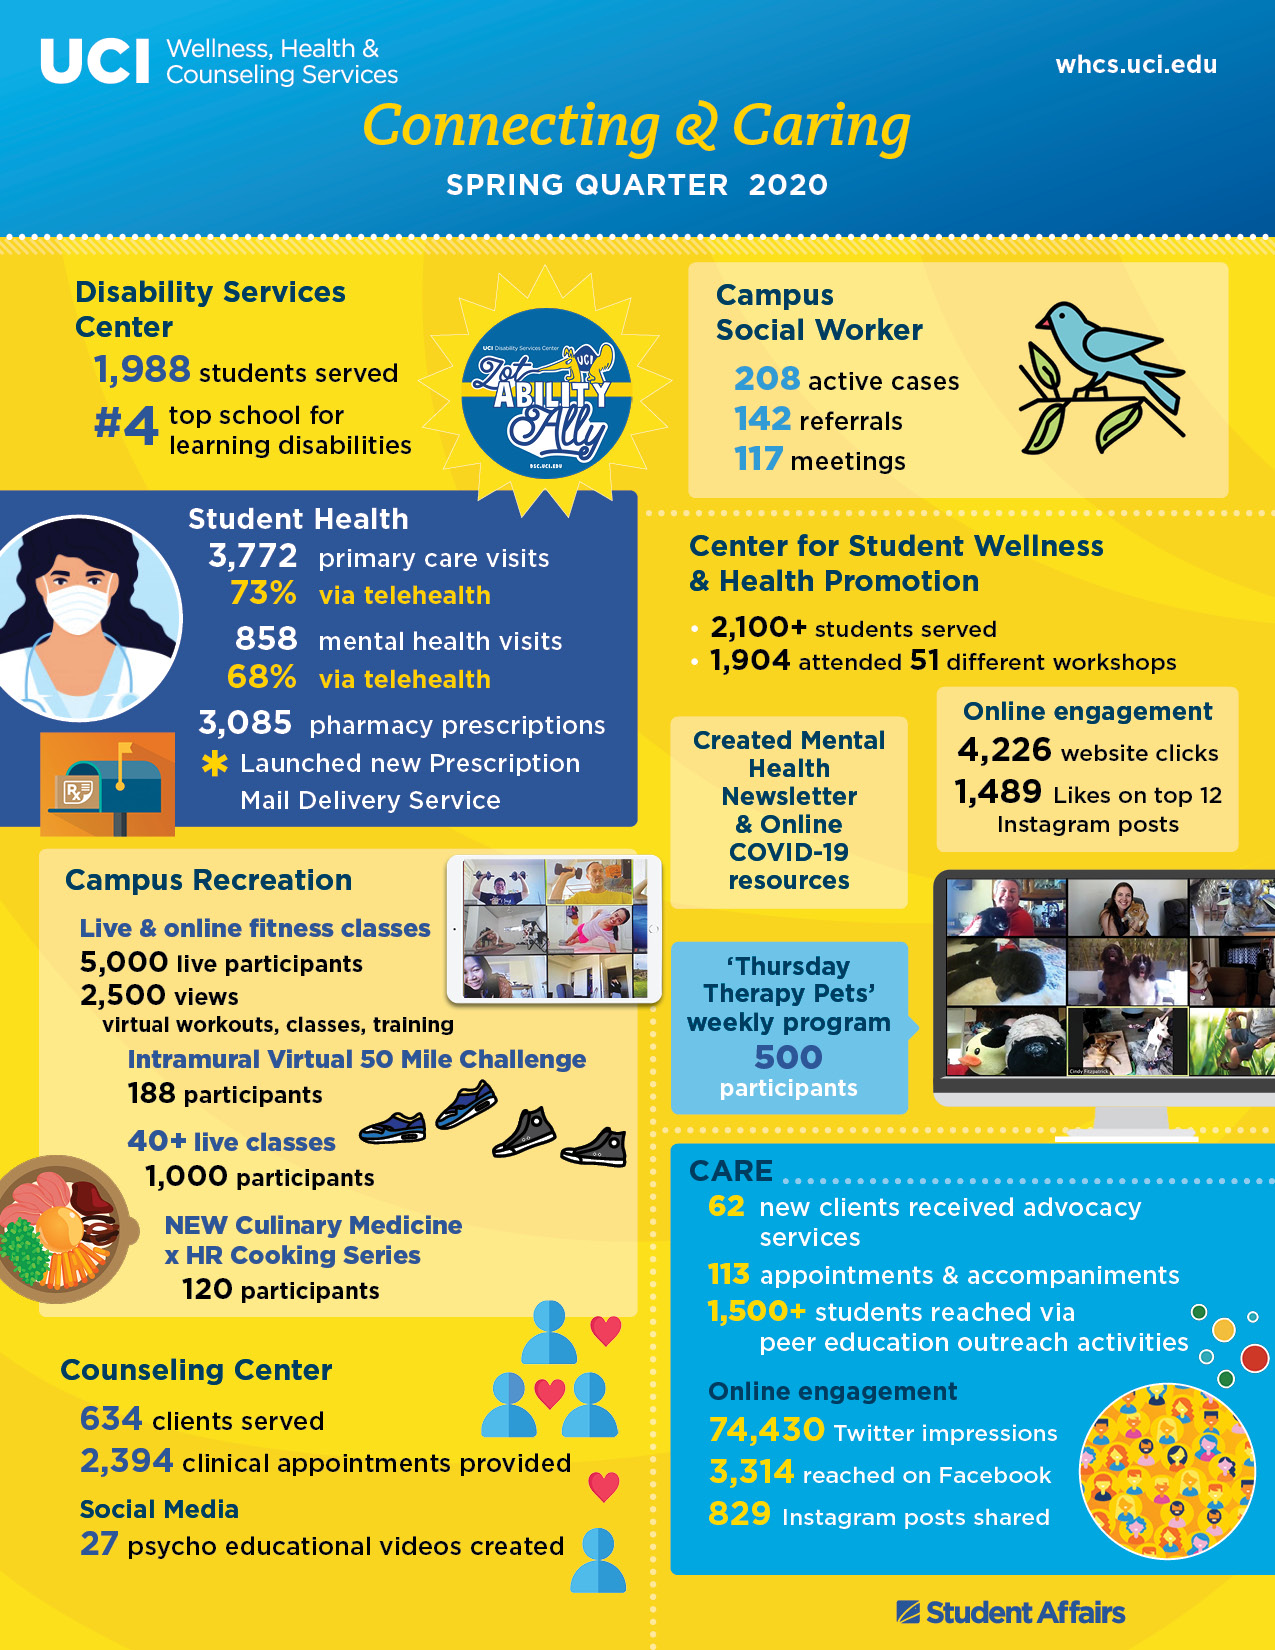 Wellness, Health & Counseling Spring Quarter 2020 infographic